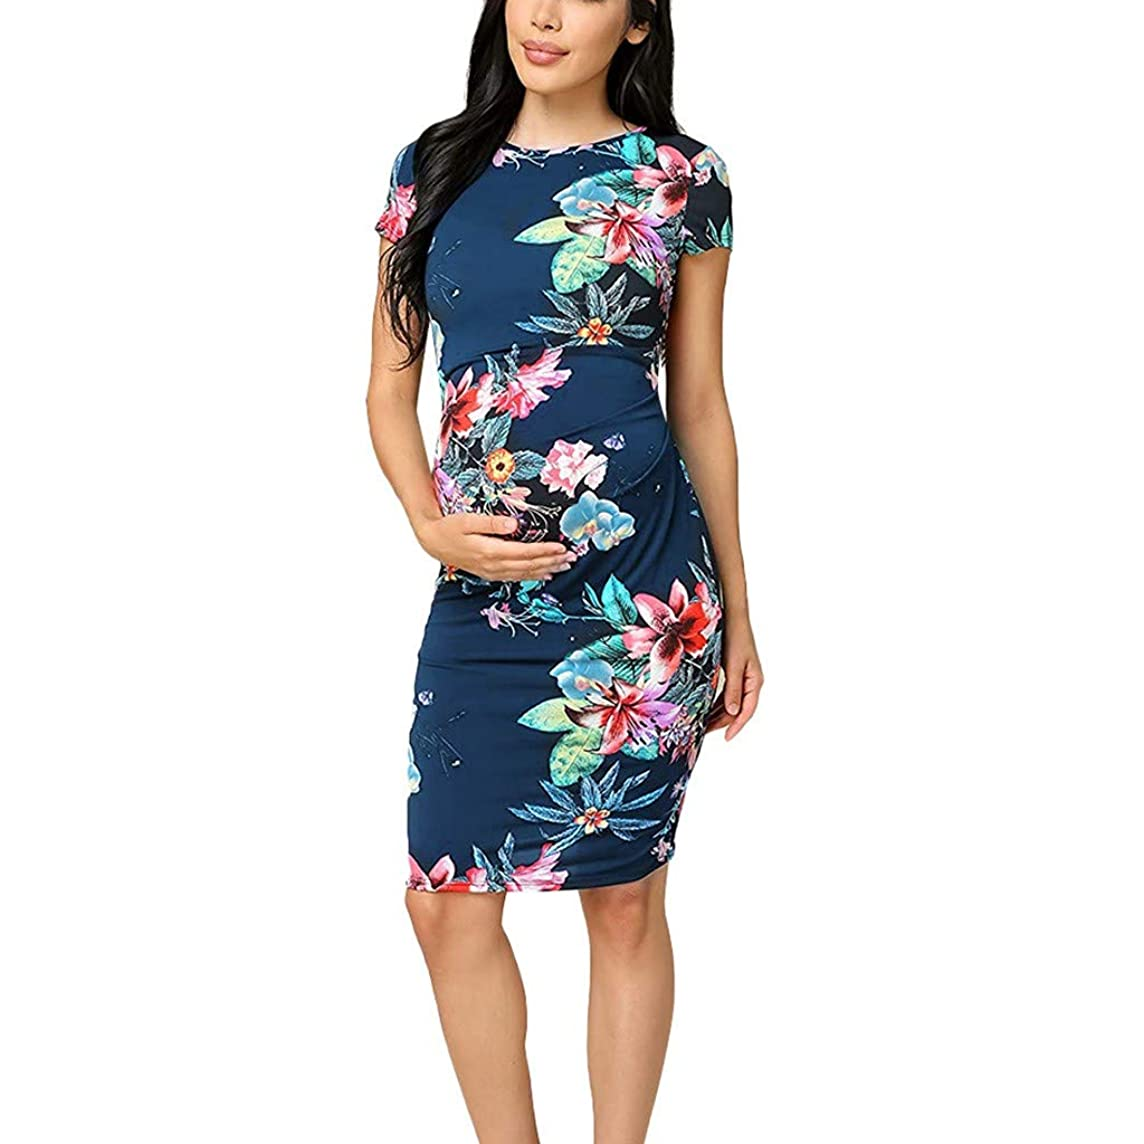 Pregnancy Clothes,Forthery Women's Maternity Bodycon Dress Causual Floral Print Short Sleeve Mama Dress